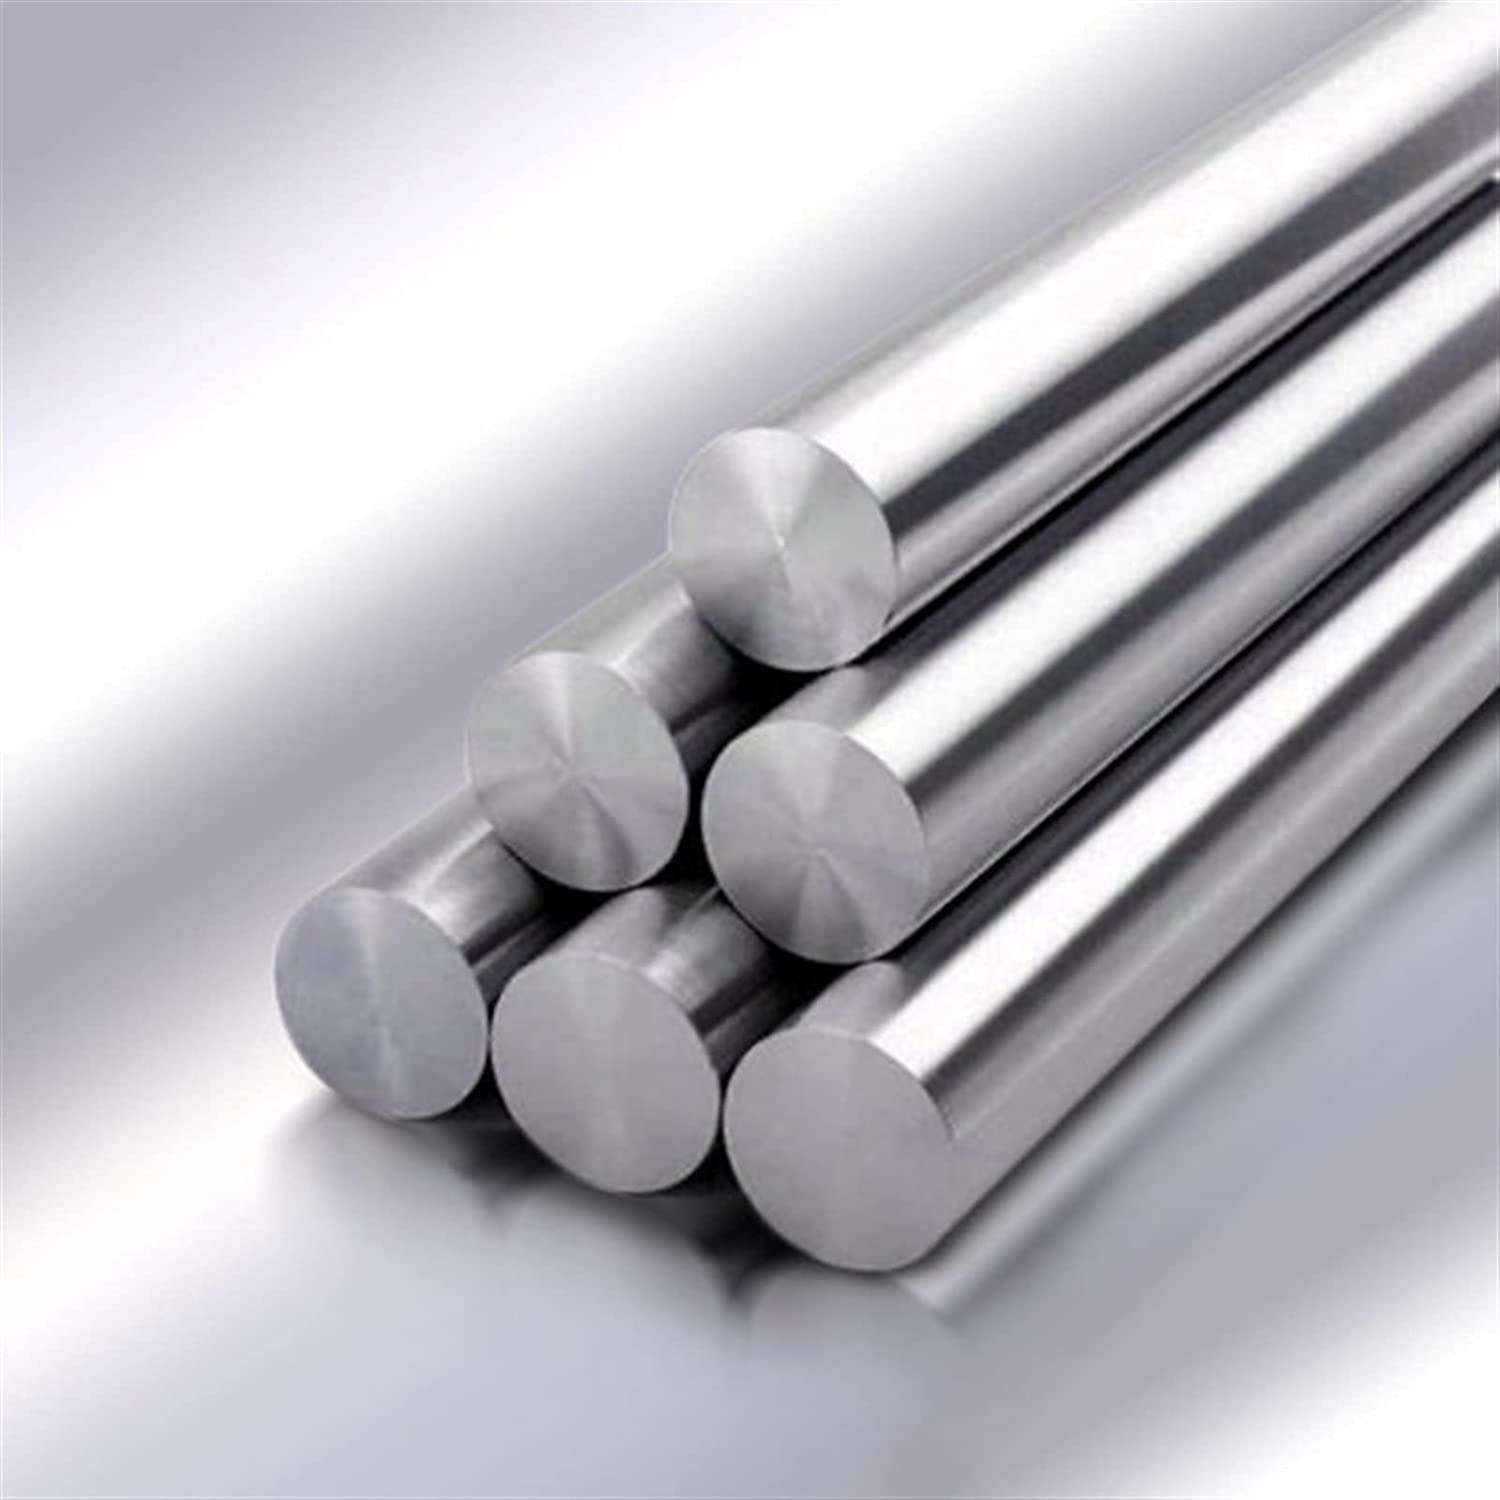 Stainless Special Campaign Steel Rod Round Silver Japan Maker New #45 Ground Shaf Stock